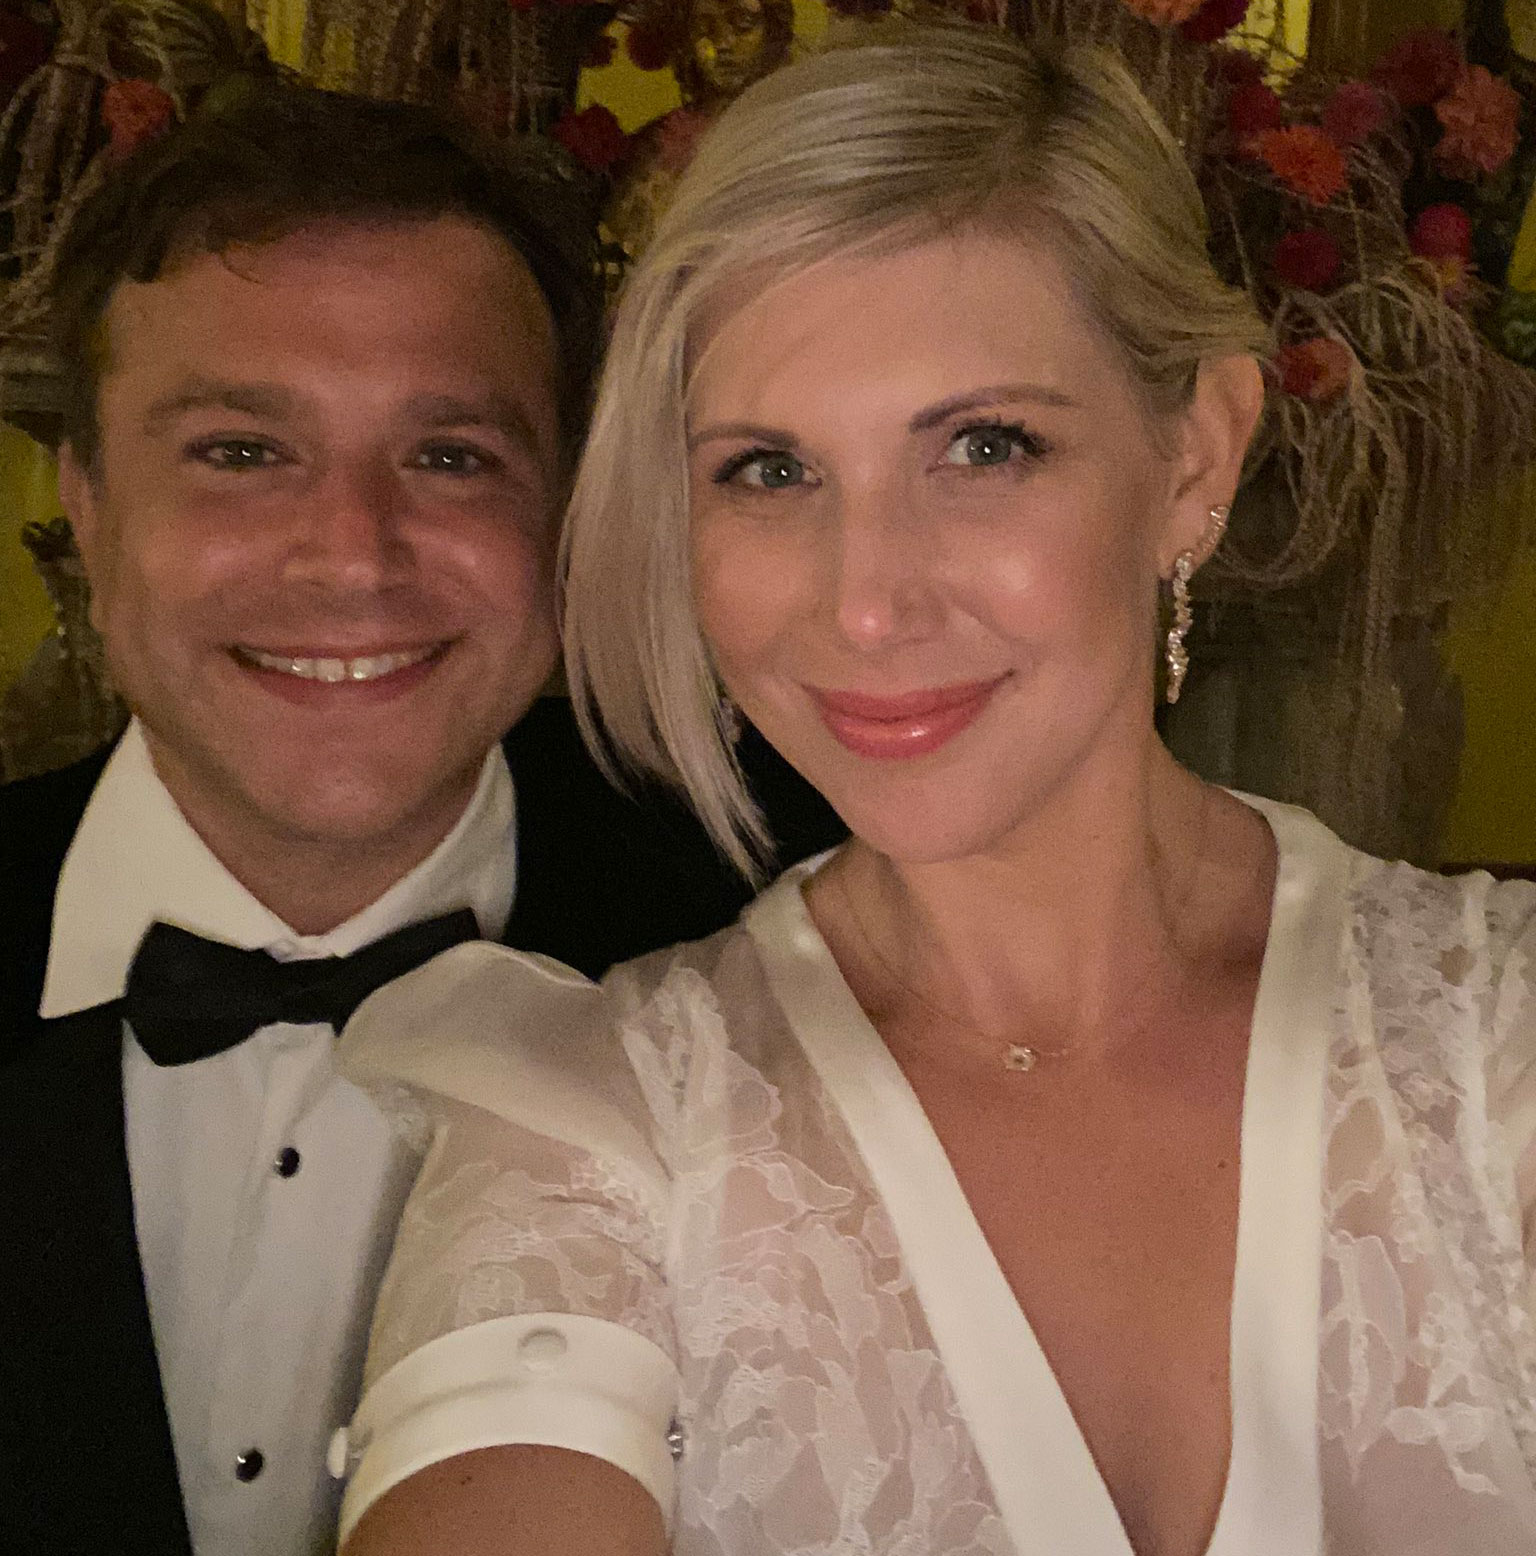 """The eldest child of the late Robin Williams is a married man!                             In an intimate ceremony, surrounded by close family and friends, Williams married his girlfriend Olivia June on Oct. 10 at the The Paramour Estate in L.A.                             """"I had the great joy of marrying my best friend @oliviajune today! It went awesome and we couldn't have tied the knot on a better day.#WorldMentalHealthDay,"""" Williamswroteon Twitter alongside a photo of the pair on their happy day.                             """"Married my best friend and love of my life today. @zakwilliams you were already stuck with me forever, and now it's legally so,"""" Juneaddedin her own celebratory message.                             The couple, who welcomed son McLaurin """"Mickey"""" Clement Williams (whose first name was Robin's middle name) last May, said they both loved the date 10-10-2020 and decided to host a COVID safe wedding outdoors.                             """"In terms of the planning process, it's been challenging, but it's cool to see how safe you can be, while enjoying a festive occasion together,"""" Williams told PEOPLE."""